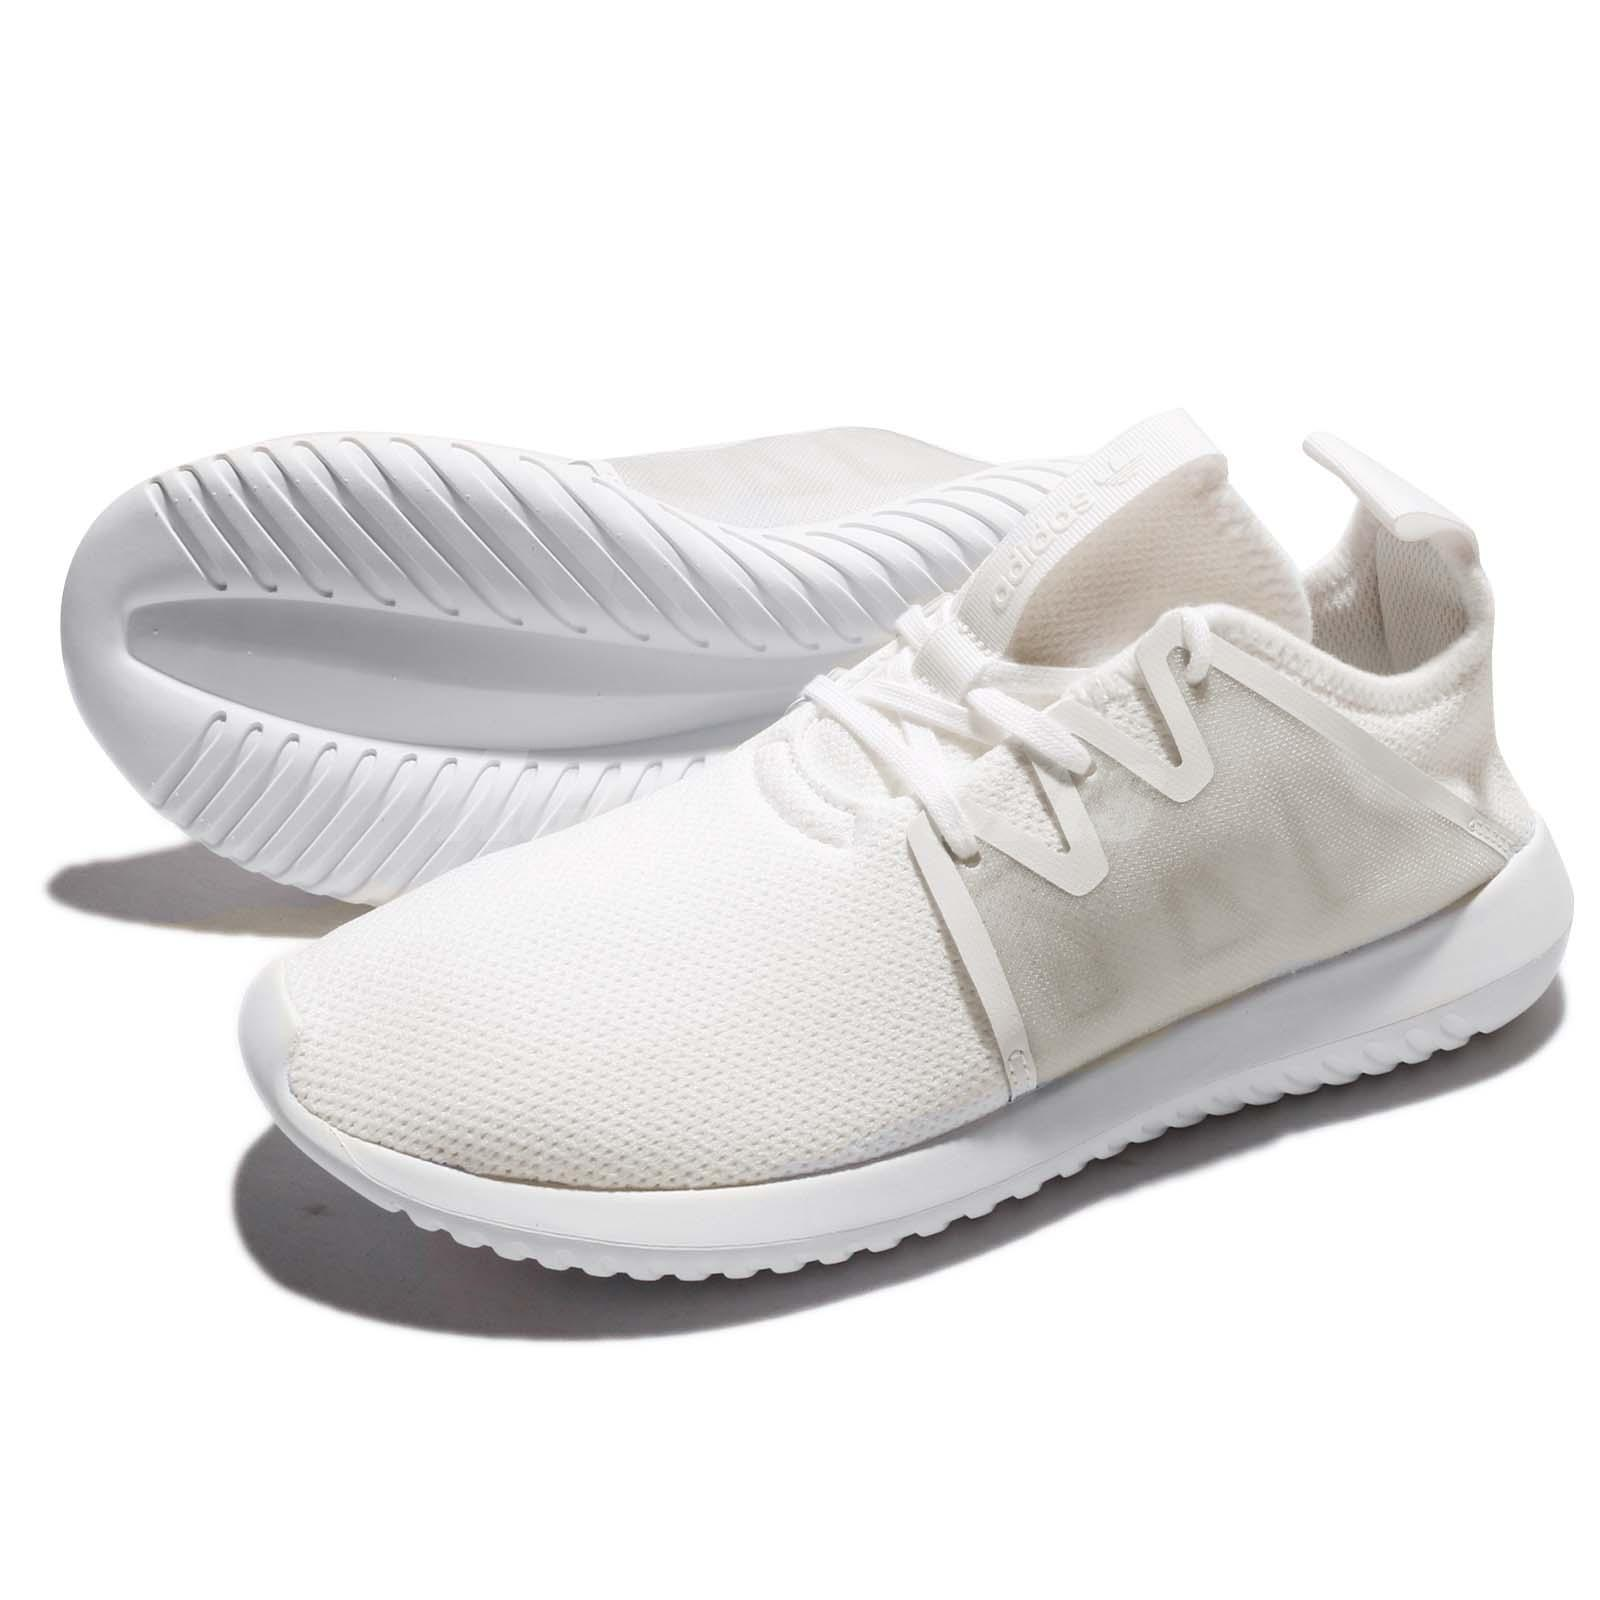 the latest ef179 94b81 Details about adidas Originals Tubular Viral 2.0 W White Women Running  Shoes Sneakers BY9743